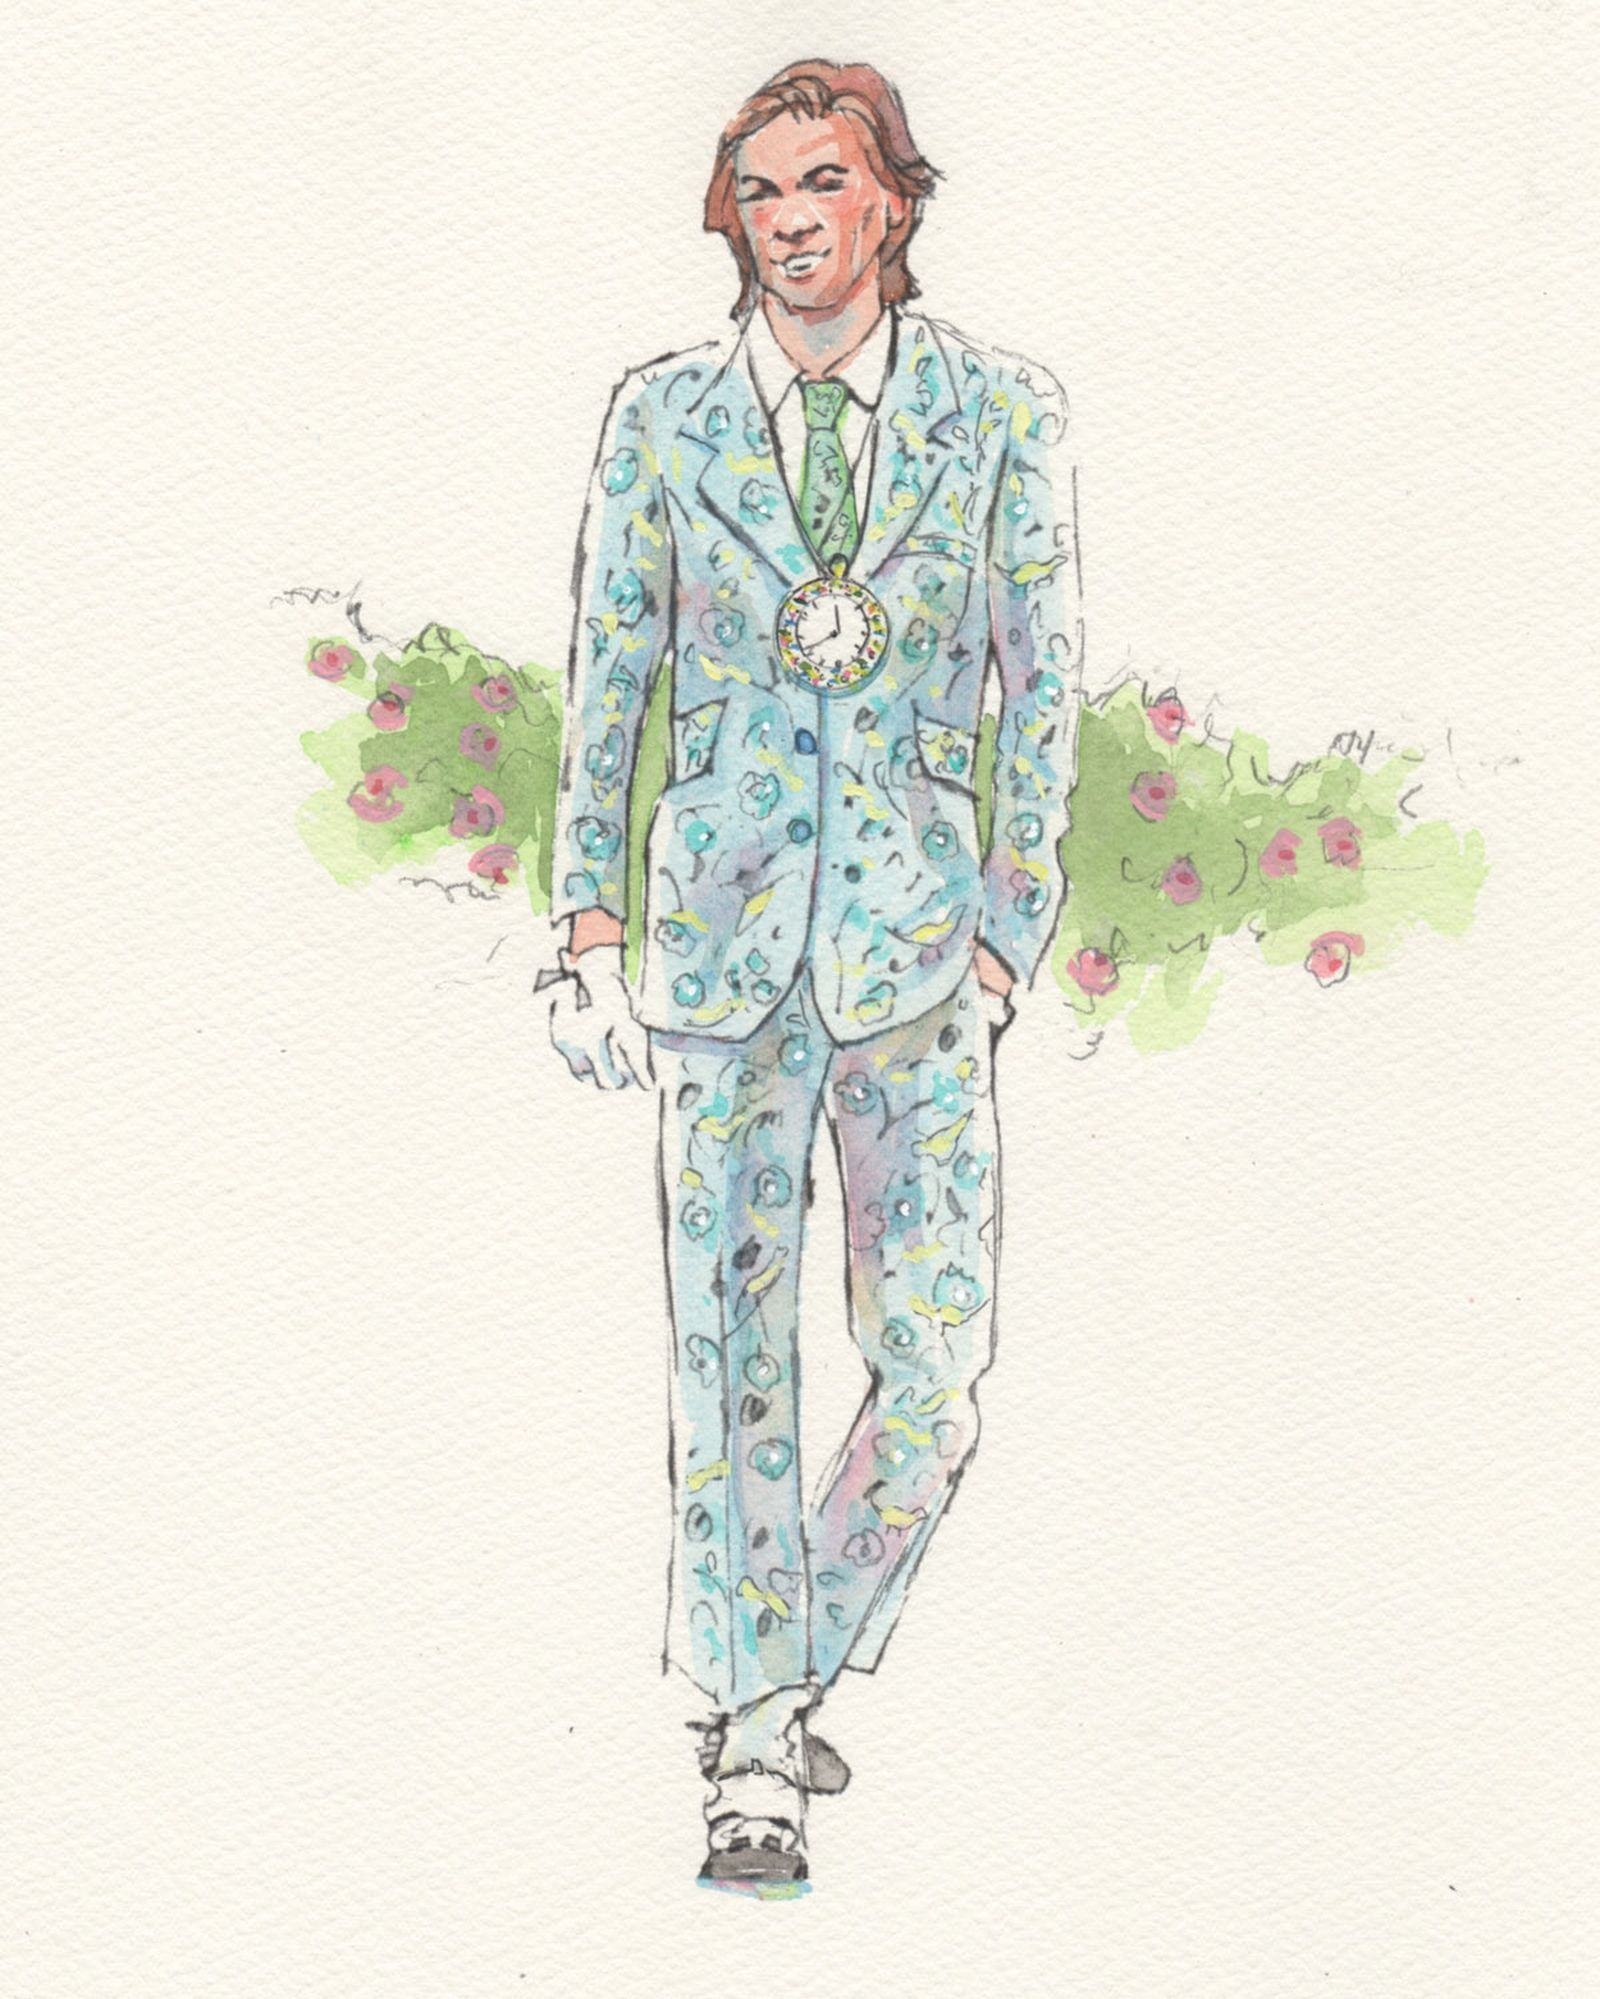 courtroom-sketch-artist-draws-fantasty-met-gala-fits-never-happened-Harry-Styles